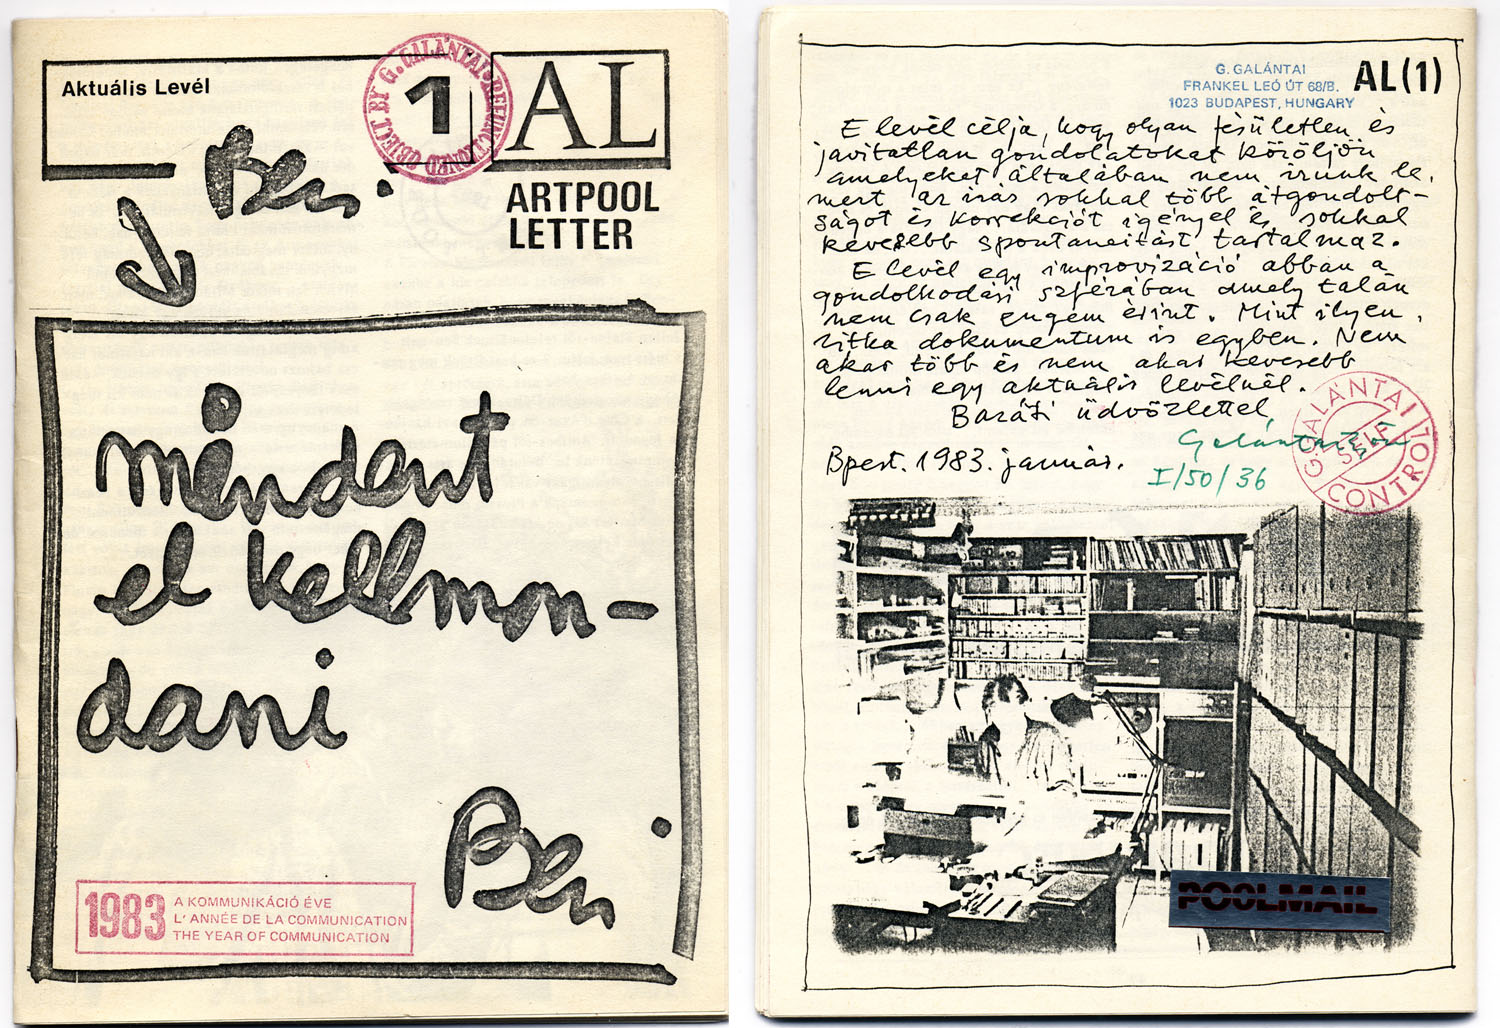 Cover (front and back) of AL 1, January 1983 (the first issue of the samizdat art magazine AL / Artpool Letter).